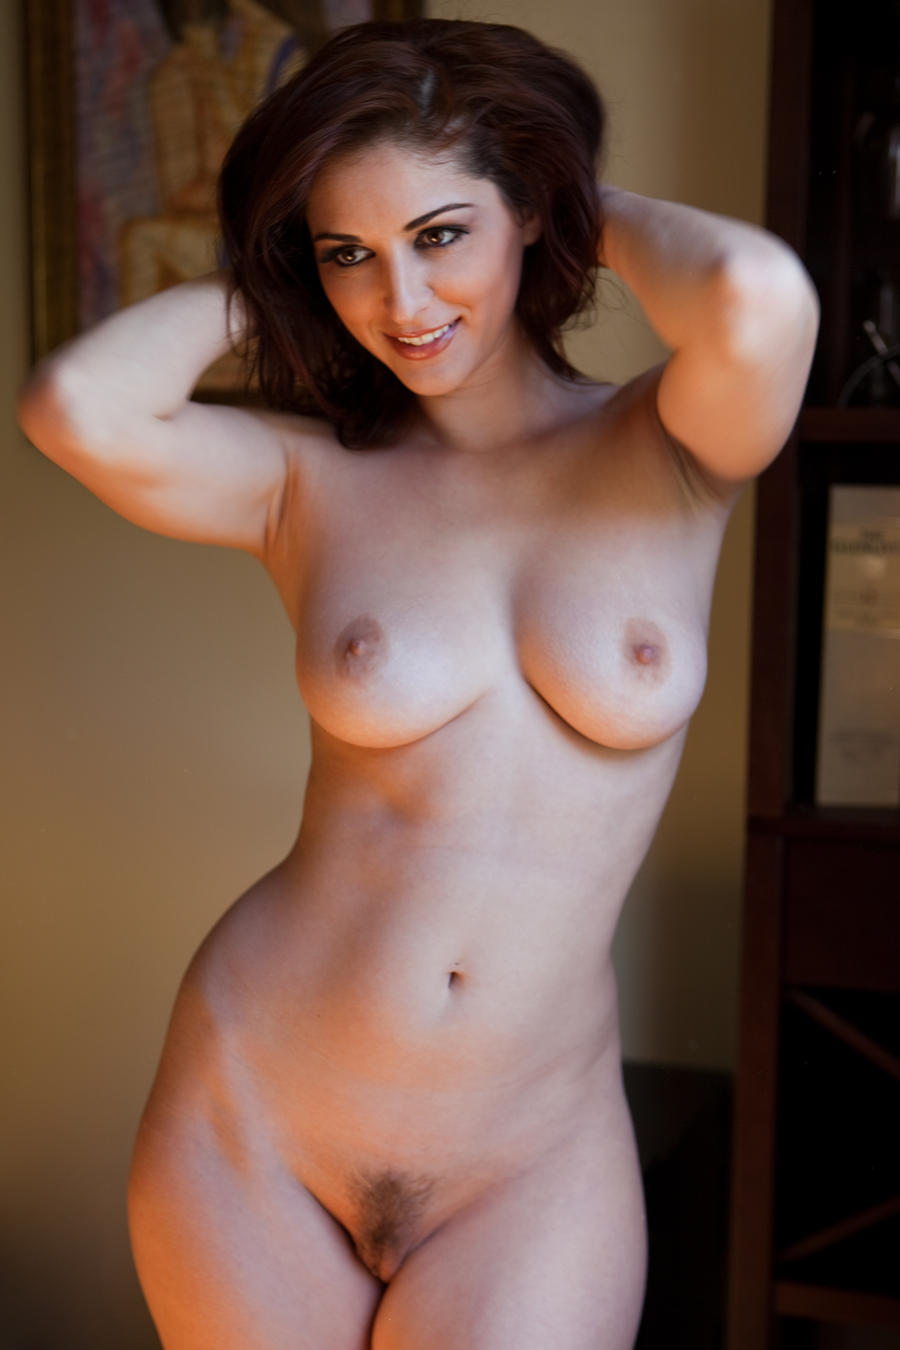 hot nude mothers naked pictures - macoun